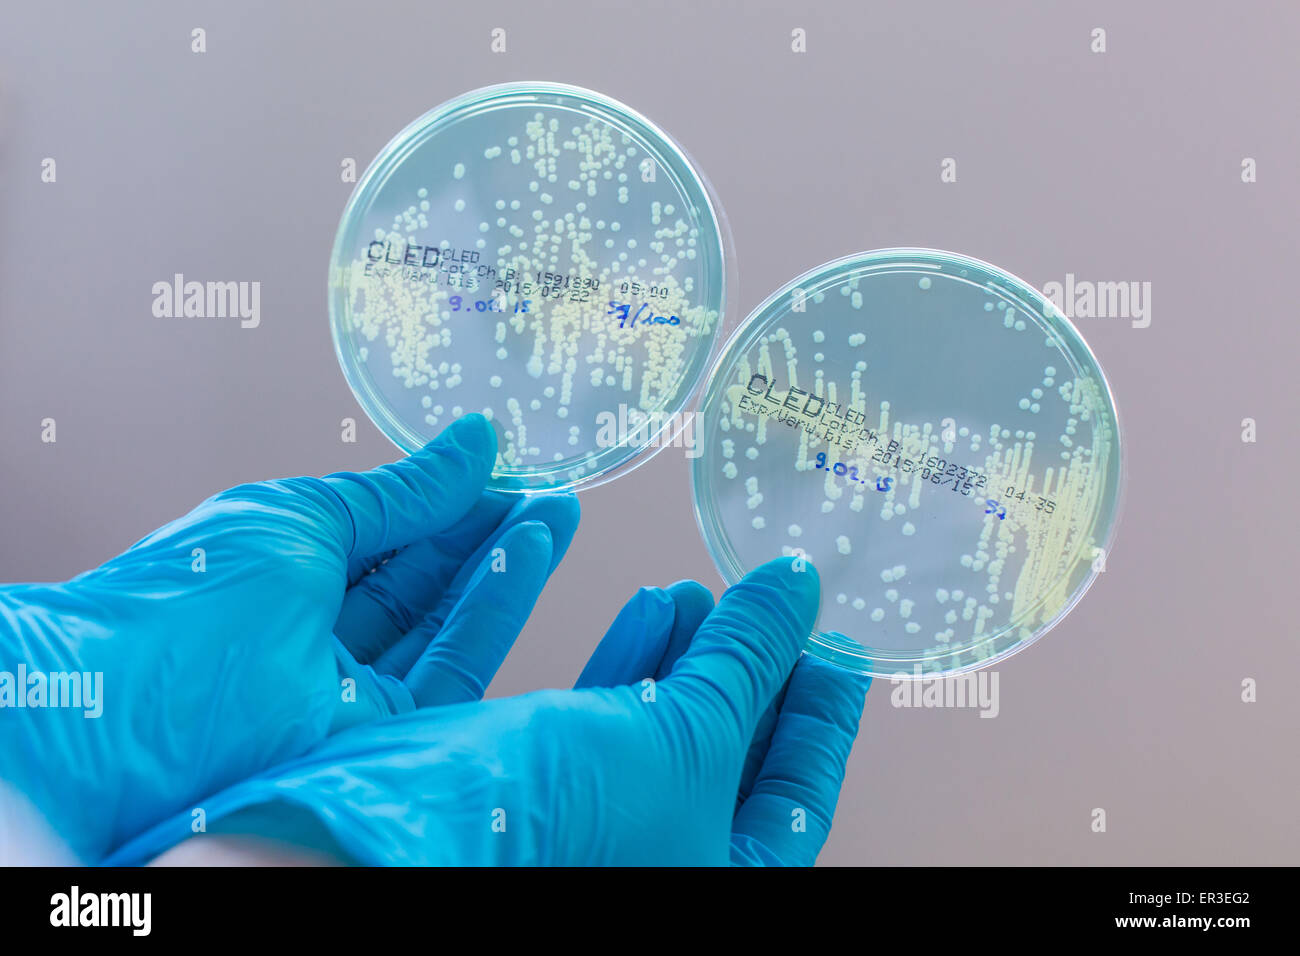 Hands holding a culture plate testing for the presence of Escherichia coli bacteria by looking at antibiotic resistance. - Stock Image